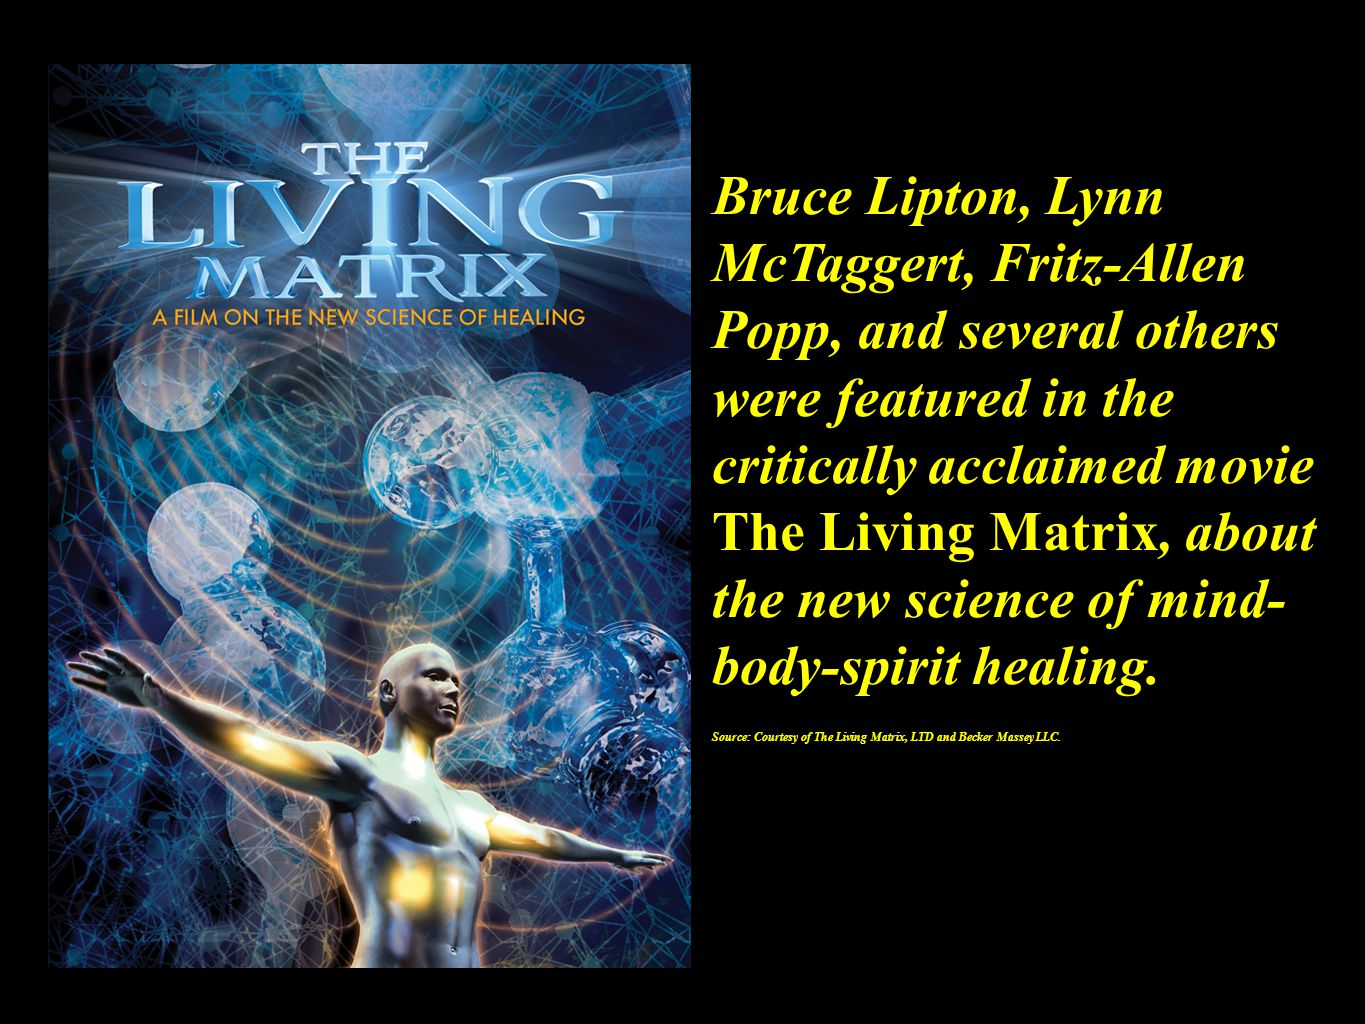 Bruce Lipton, Lynn McTaggert, Fritz-Allen Popp, and several others were featured in the critically acclaimed movie The Living Matrix, about the new sc